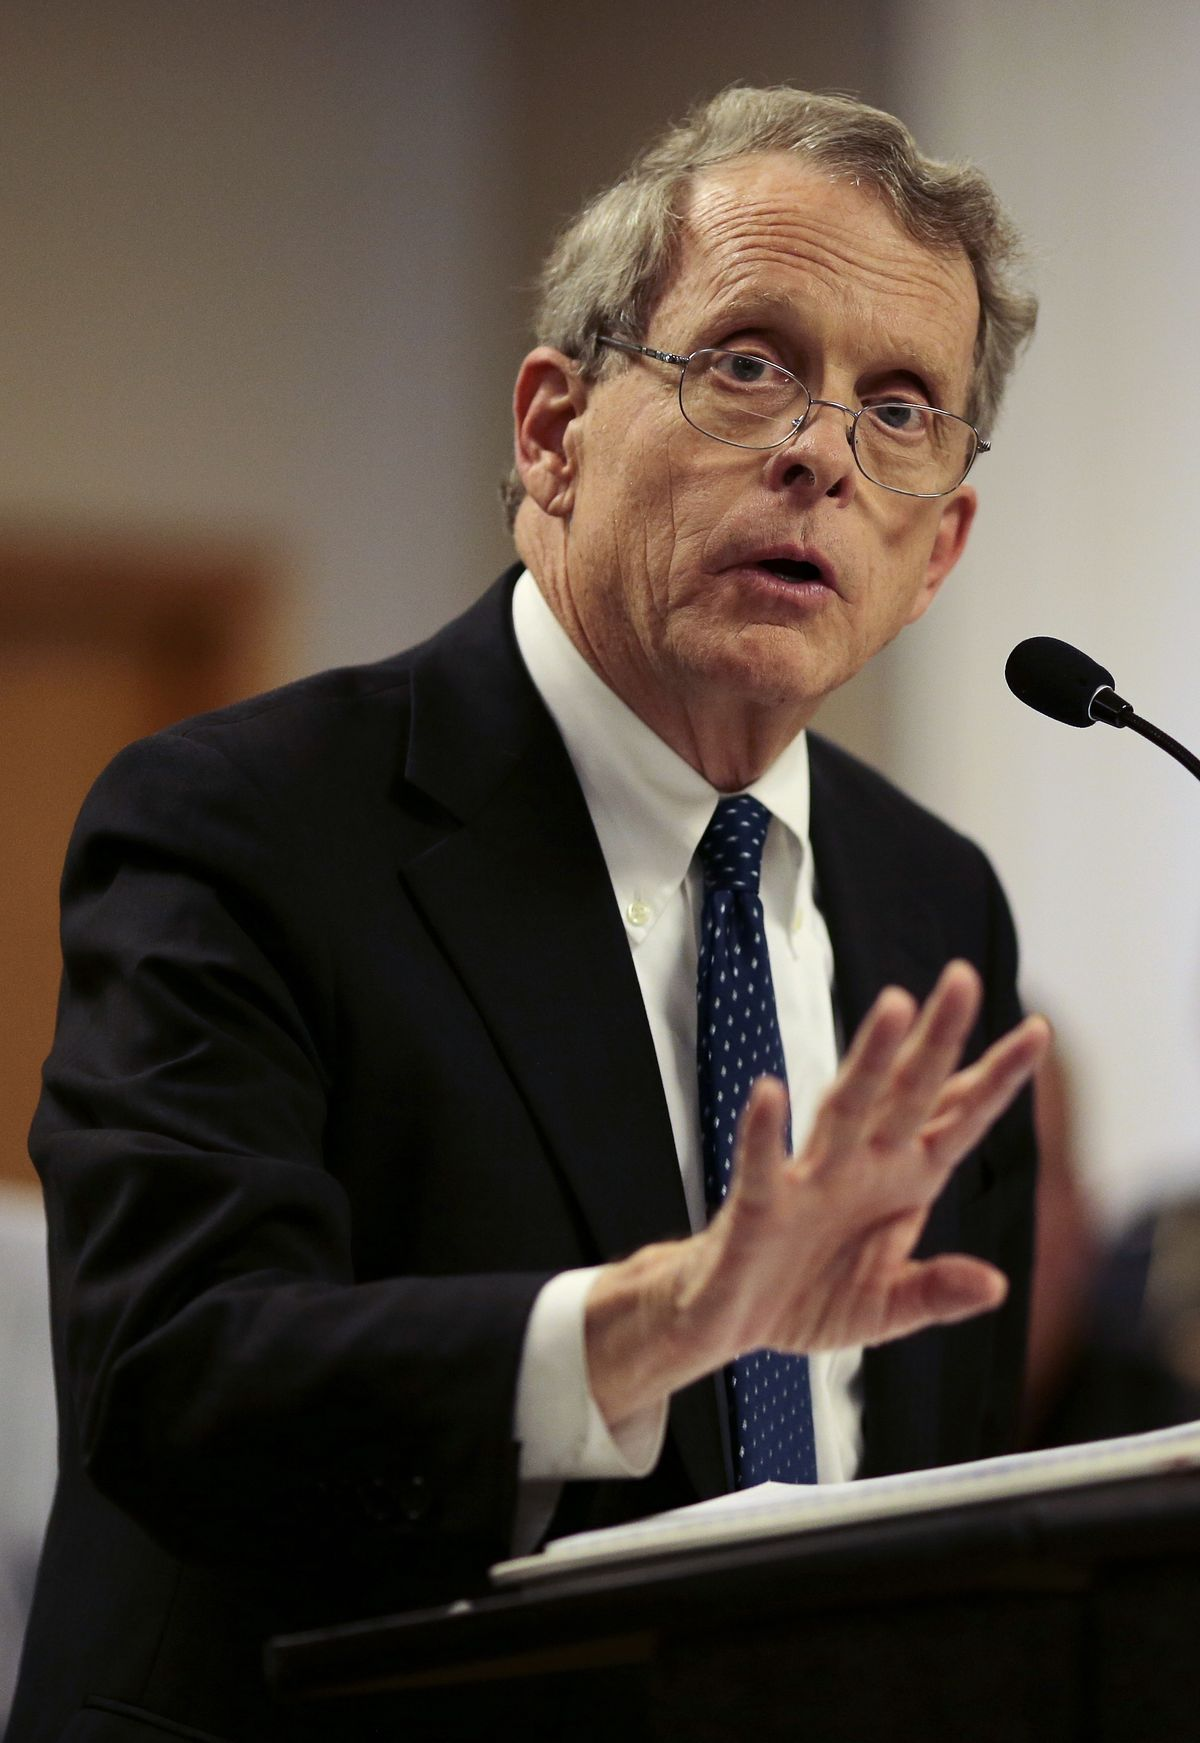 """FILE- In this April 22, 2016, file photo, Ohio State Attorney General Mike DeWine speaks during a news conference in Piketon, Ohio. Authorities are scrambling to determine who killed eight family members in a """"pre-planned execution"""" that has shaken residents of their rural southern Ohio community. DeWine on Sunday, April 24, described the killings near the small community of Piketon as """"a sophisticated operation."""" (Sam Greene/The Cincinnati Equirer via AP, File) MANDATORY CREDIT; NO SALES (AP)"""